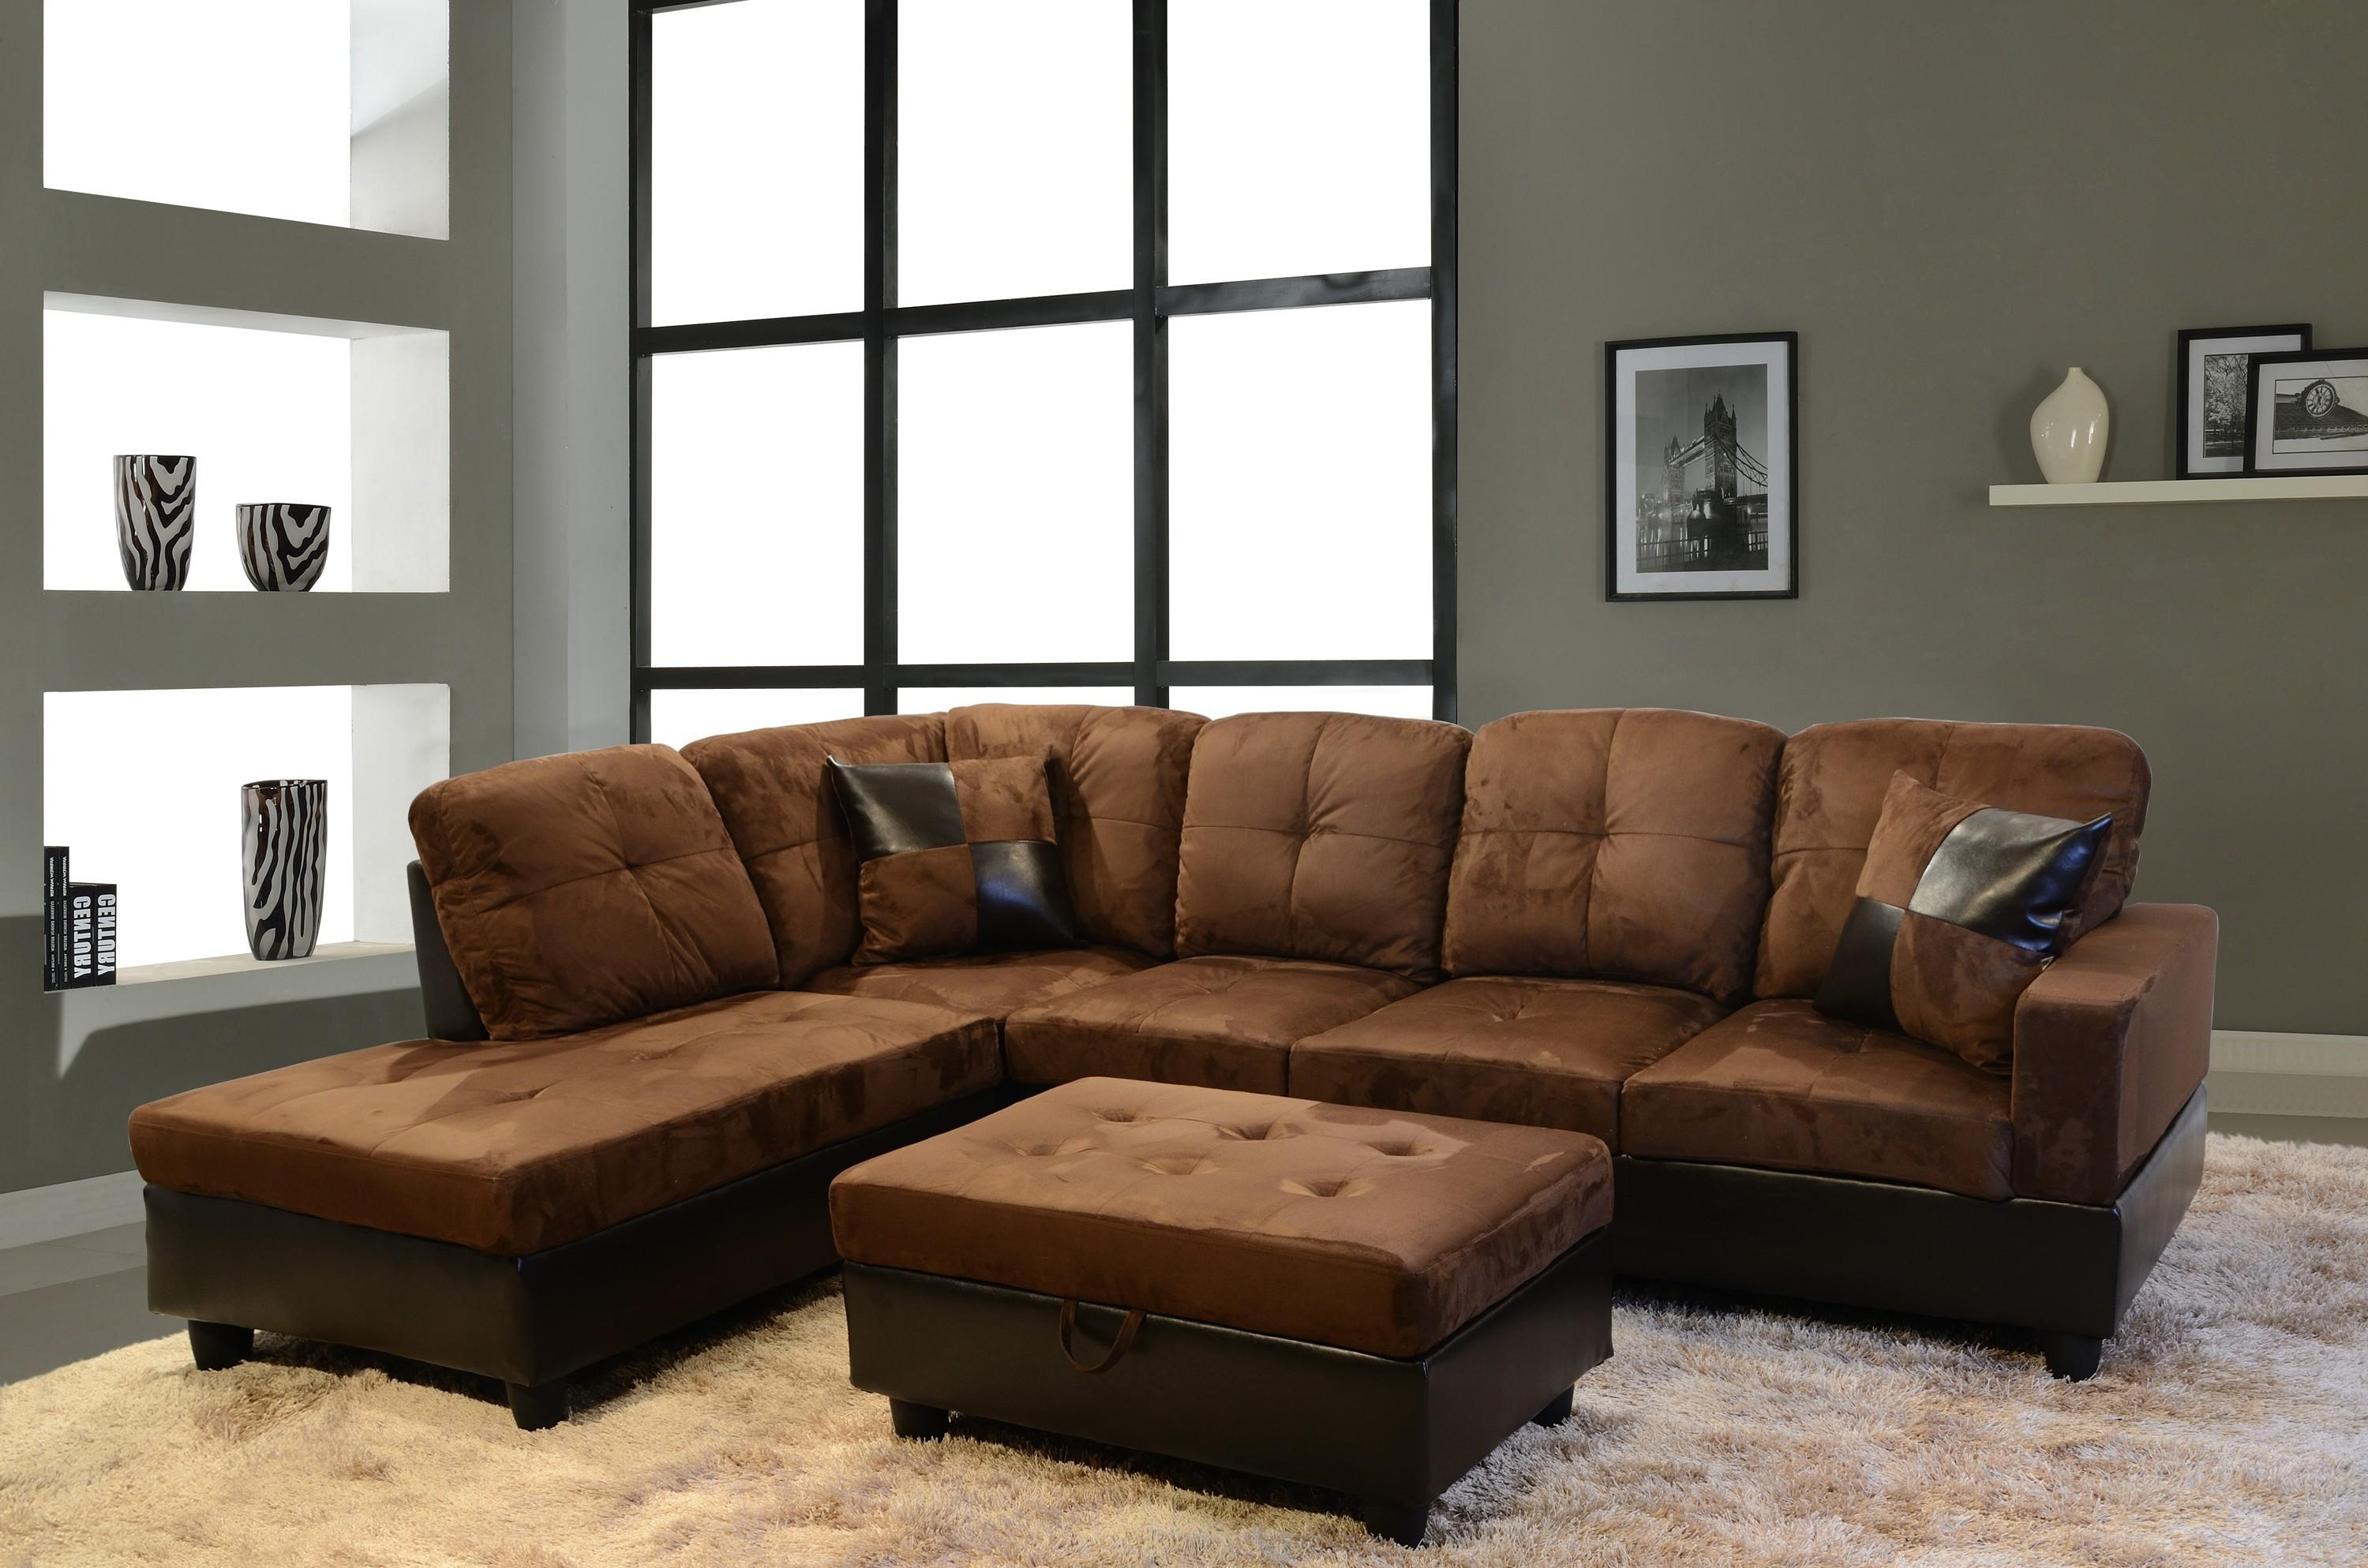 Furniture: Fantastic Sectional Couches With Recliners For Your With Regard To Leather And Suede Sectional (Image 7 of 20)